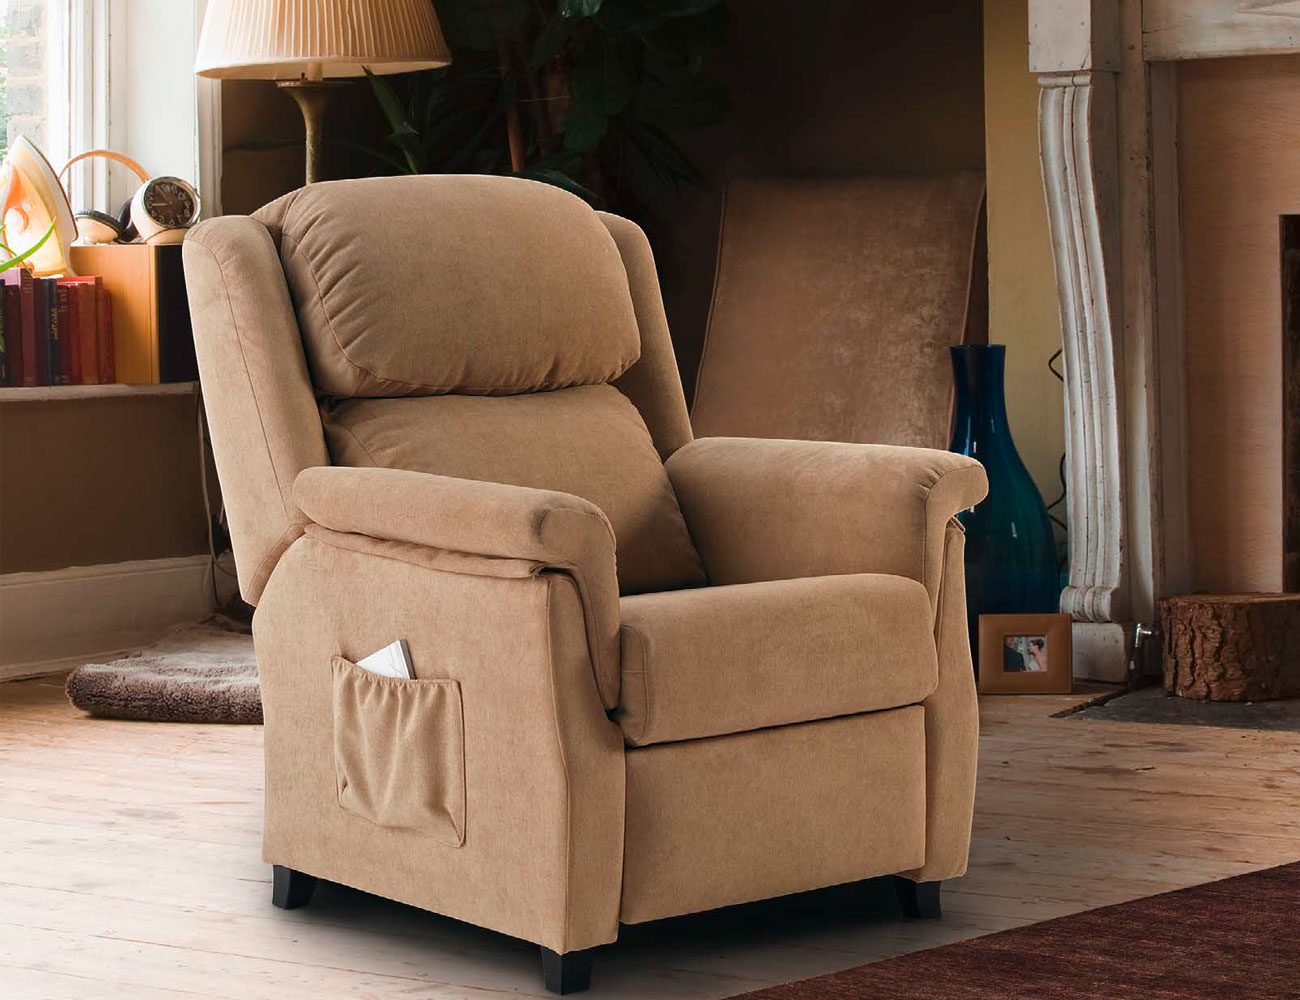 Sillon relax manual bianca 118